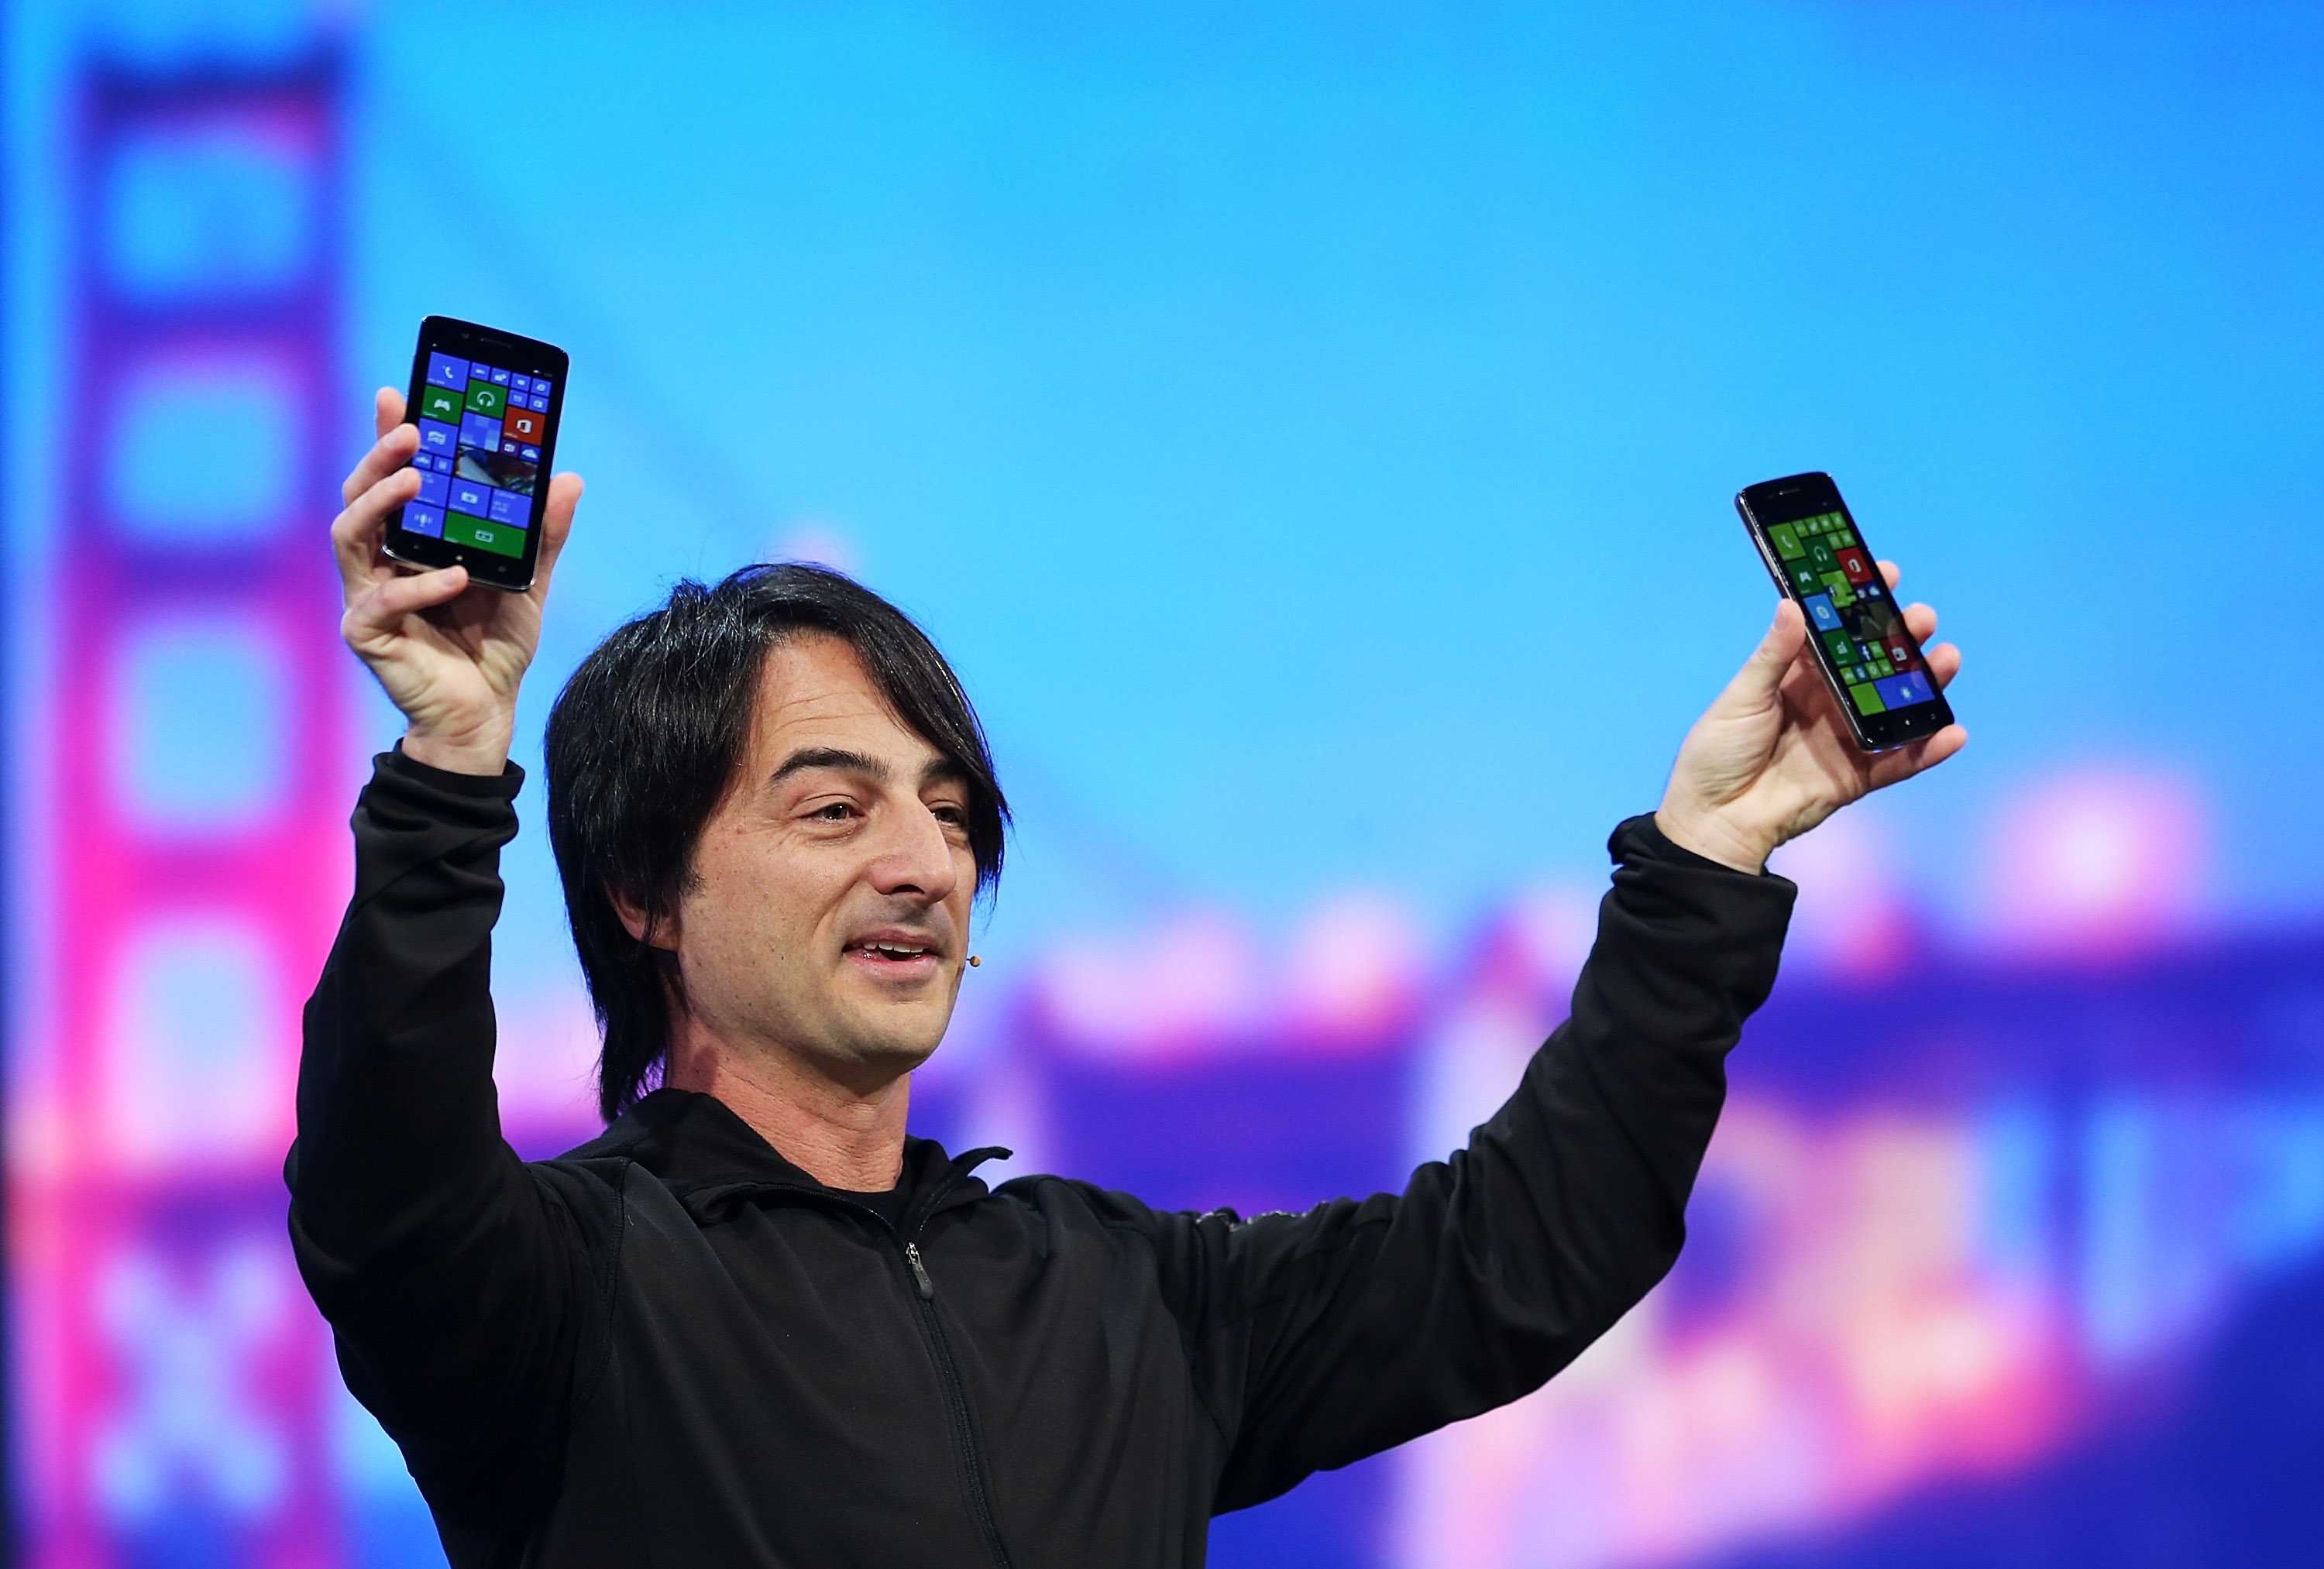 Joe Belfiore Microsoft Build Conference 2014